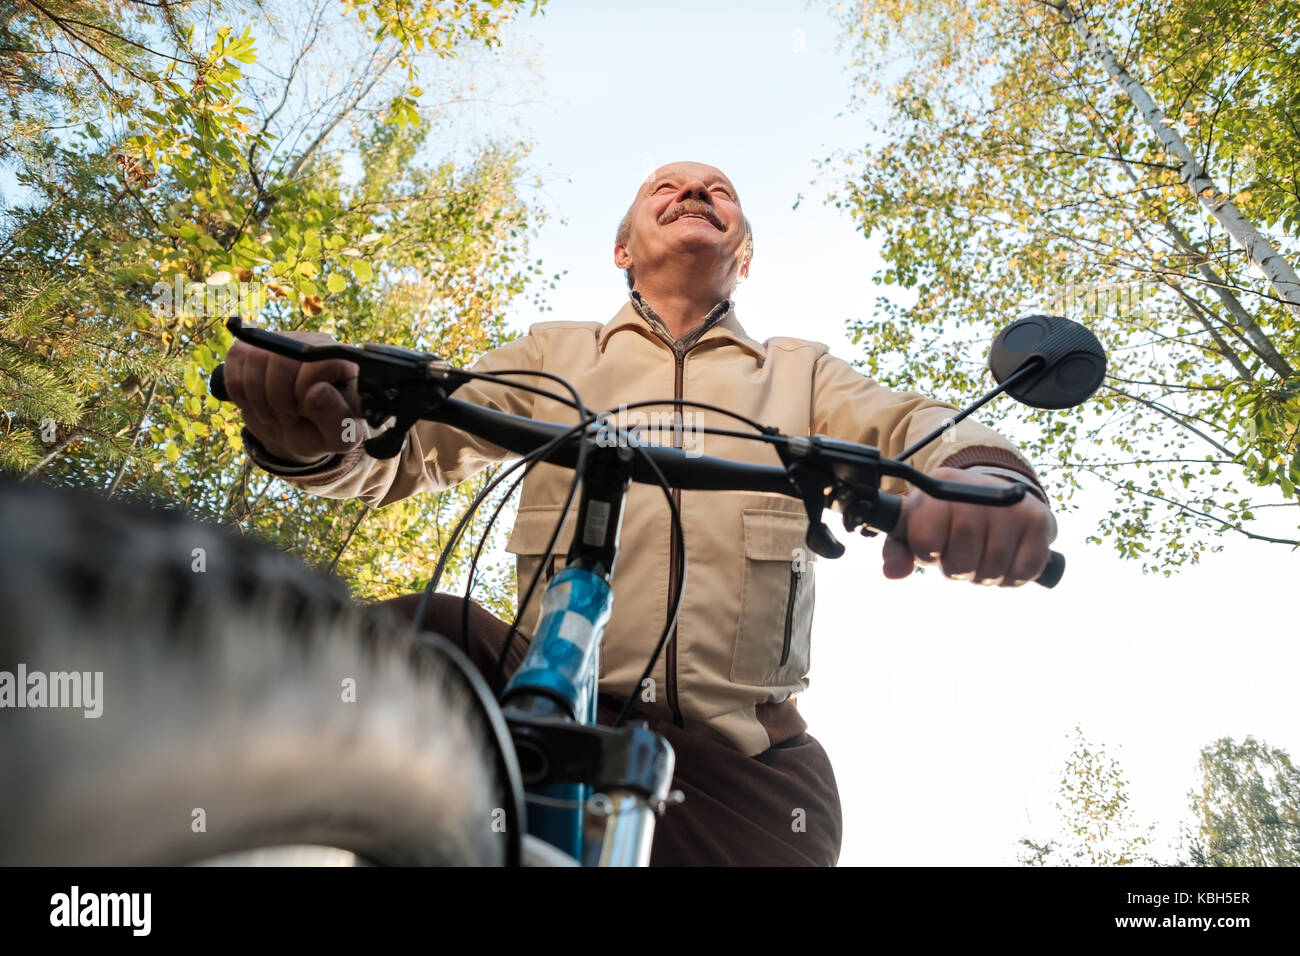 Senior man on cycle ride in countryside Photo Stock